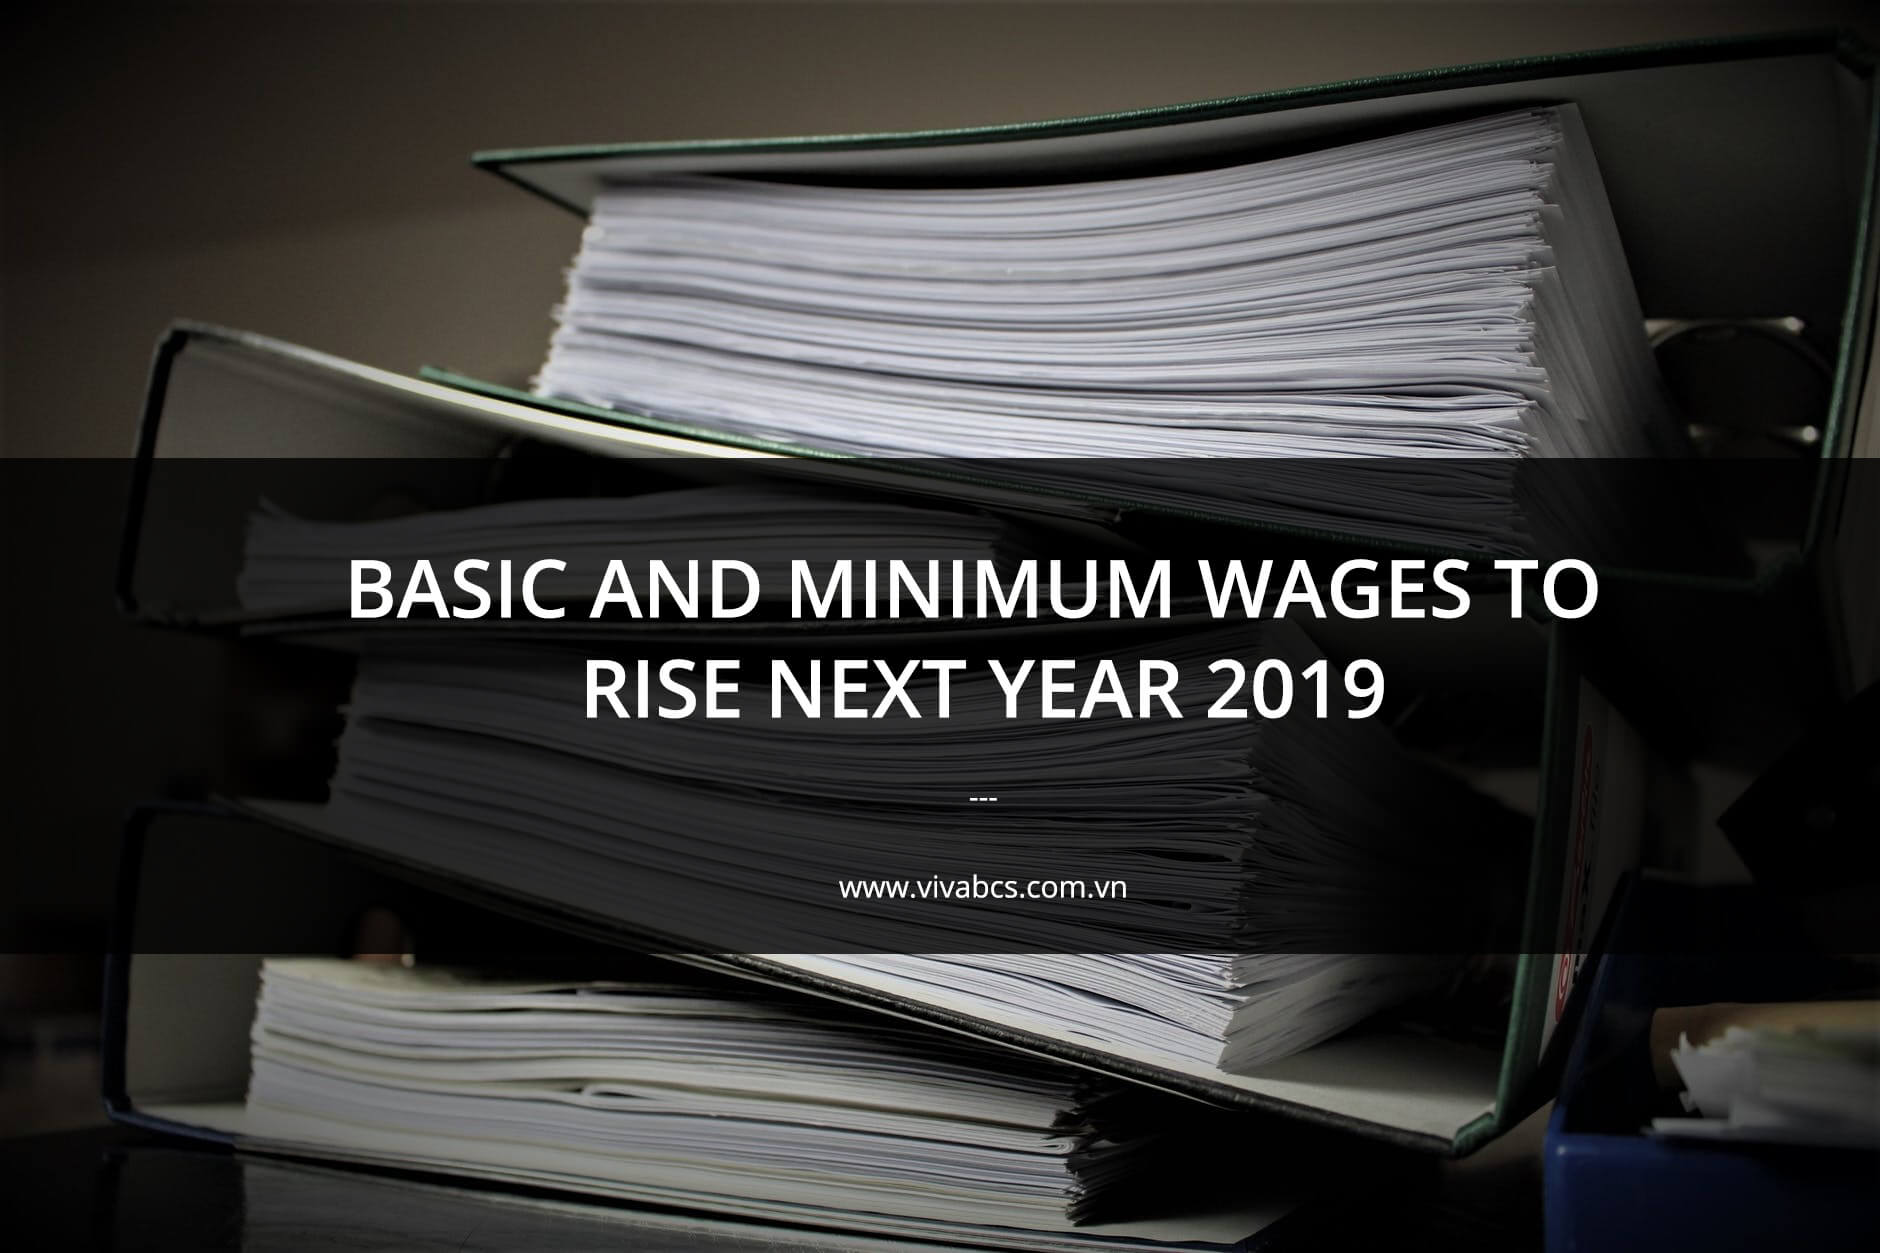 Minimum Wages And Basic Wages To Rise Next Year 2019